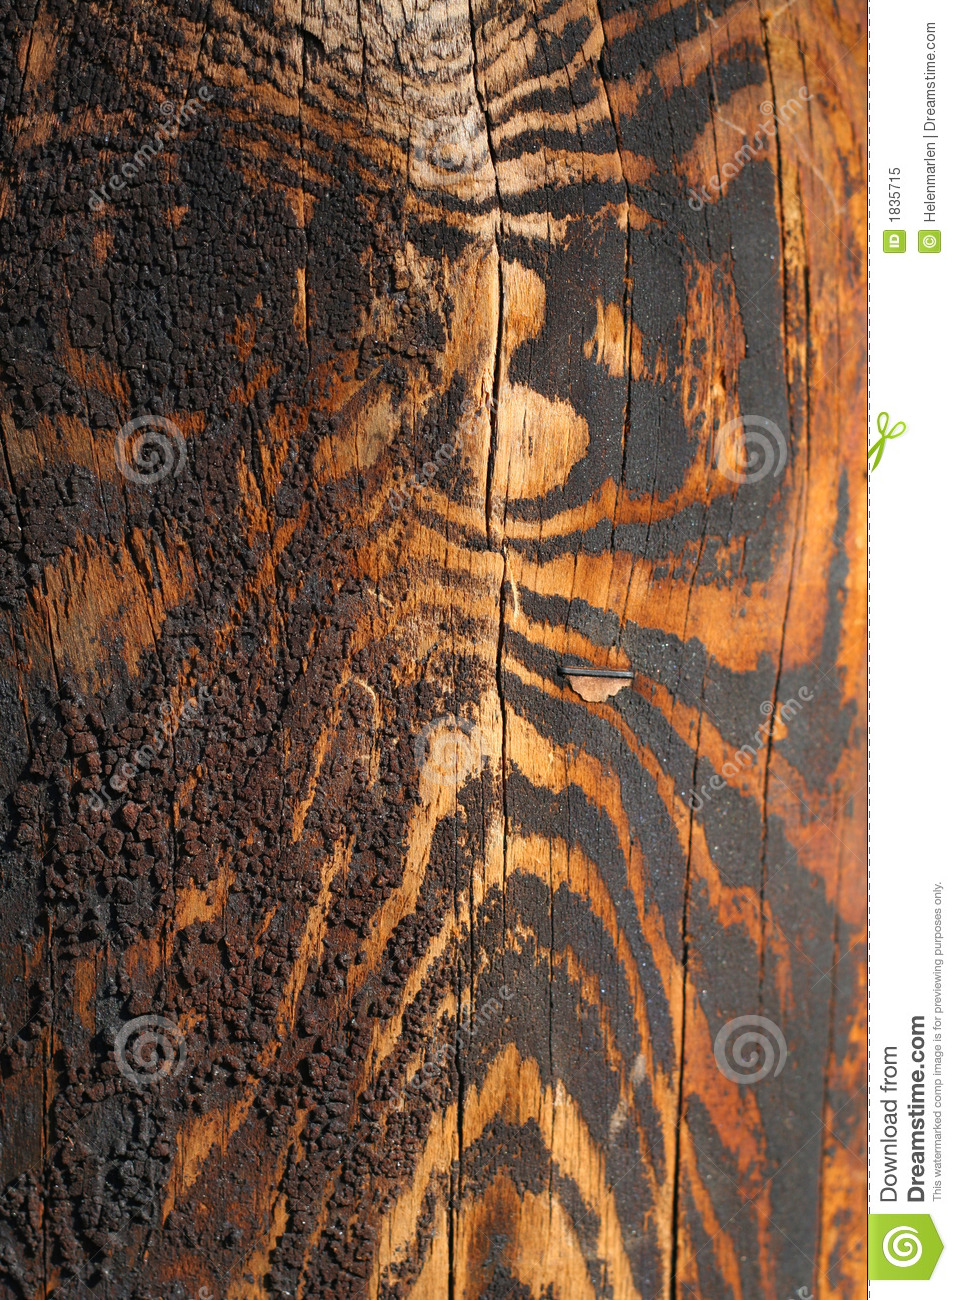 Wood acquired tiger coloring as it aged